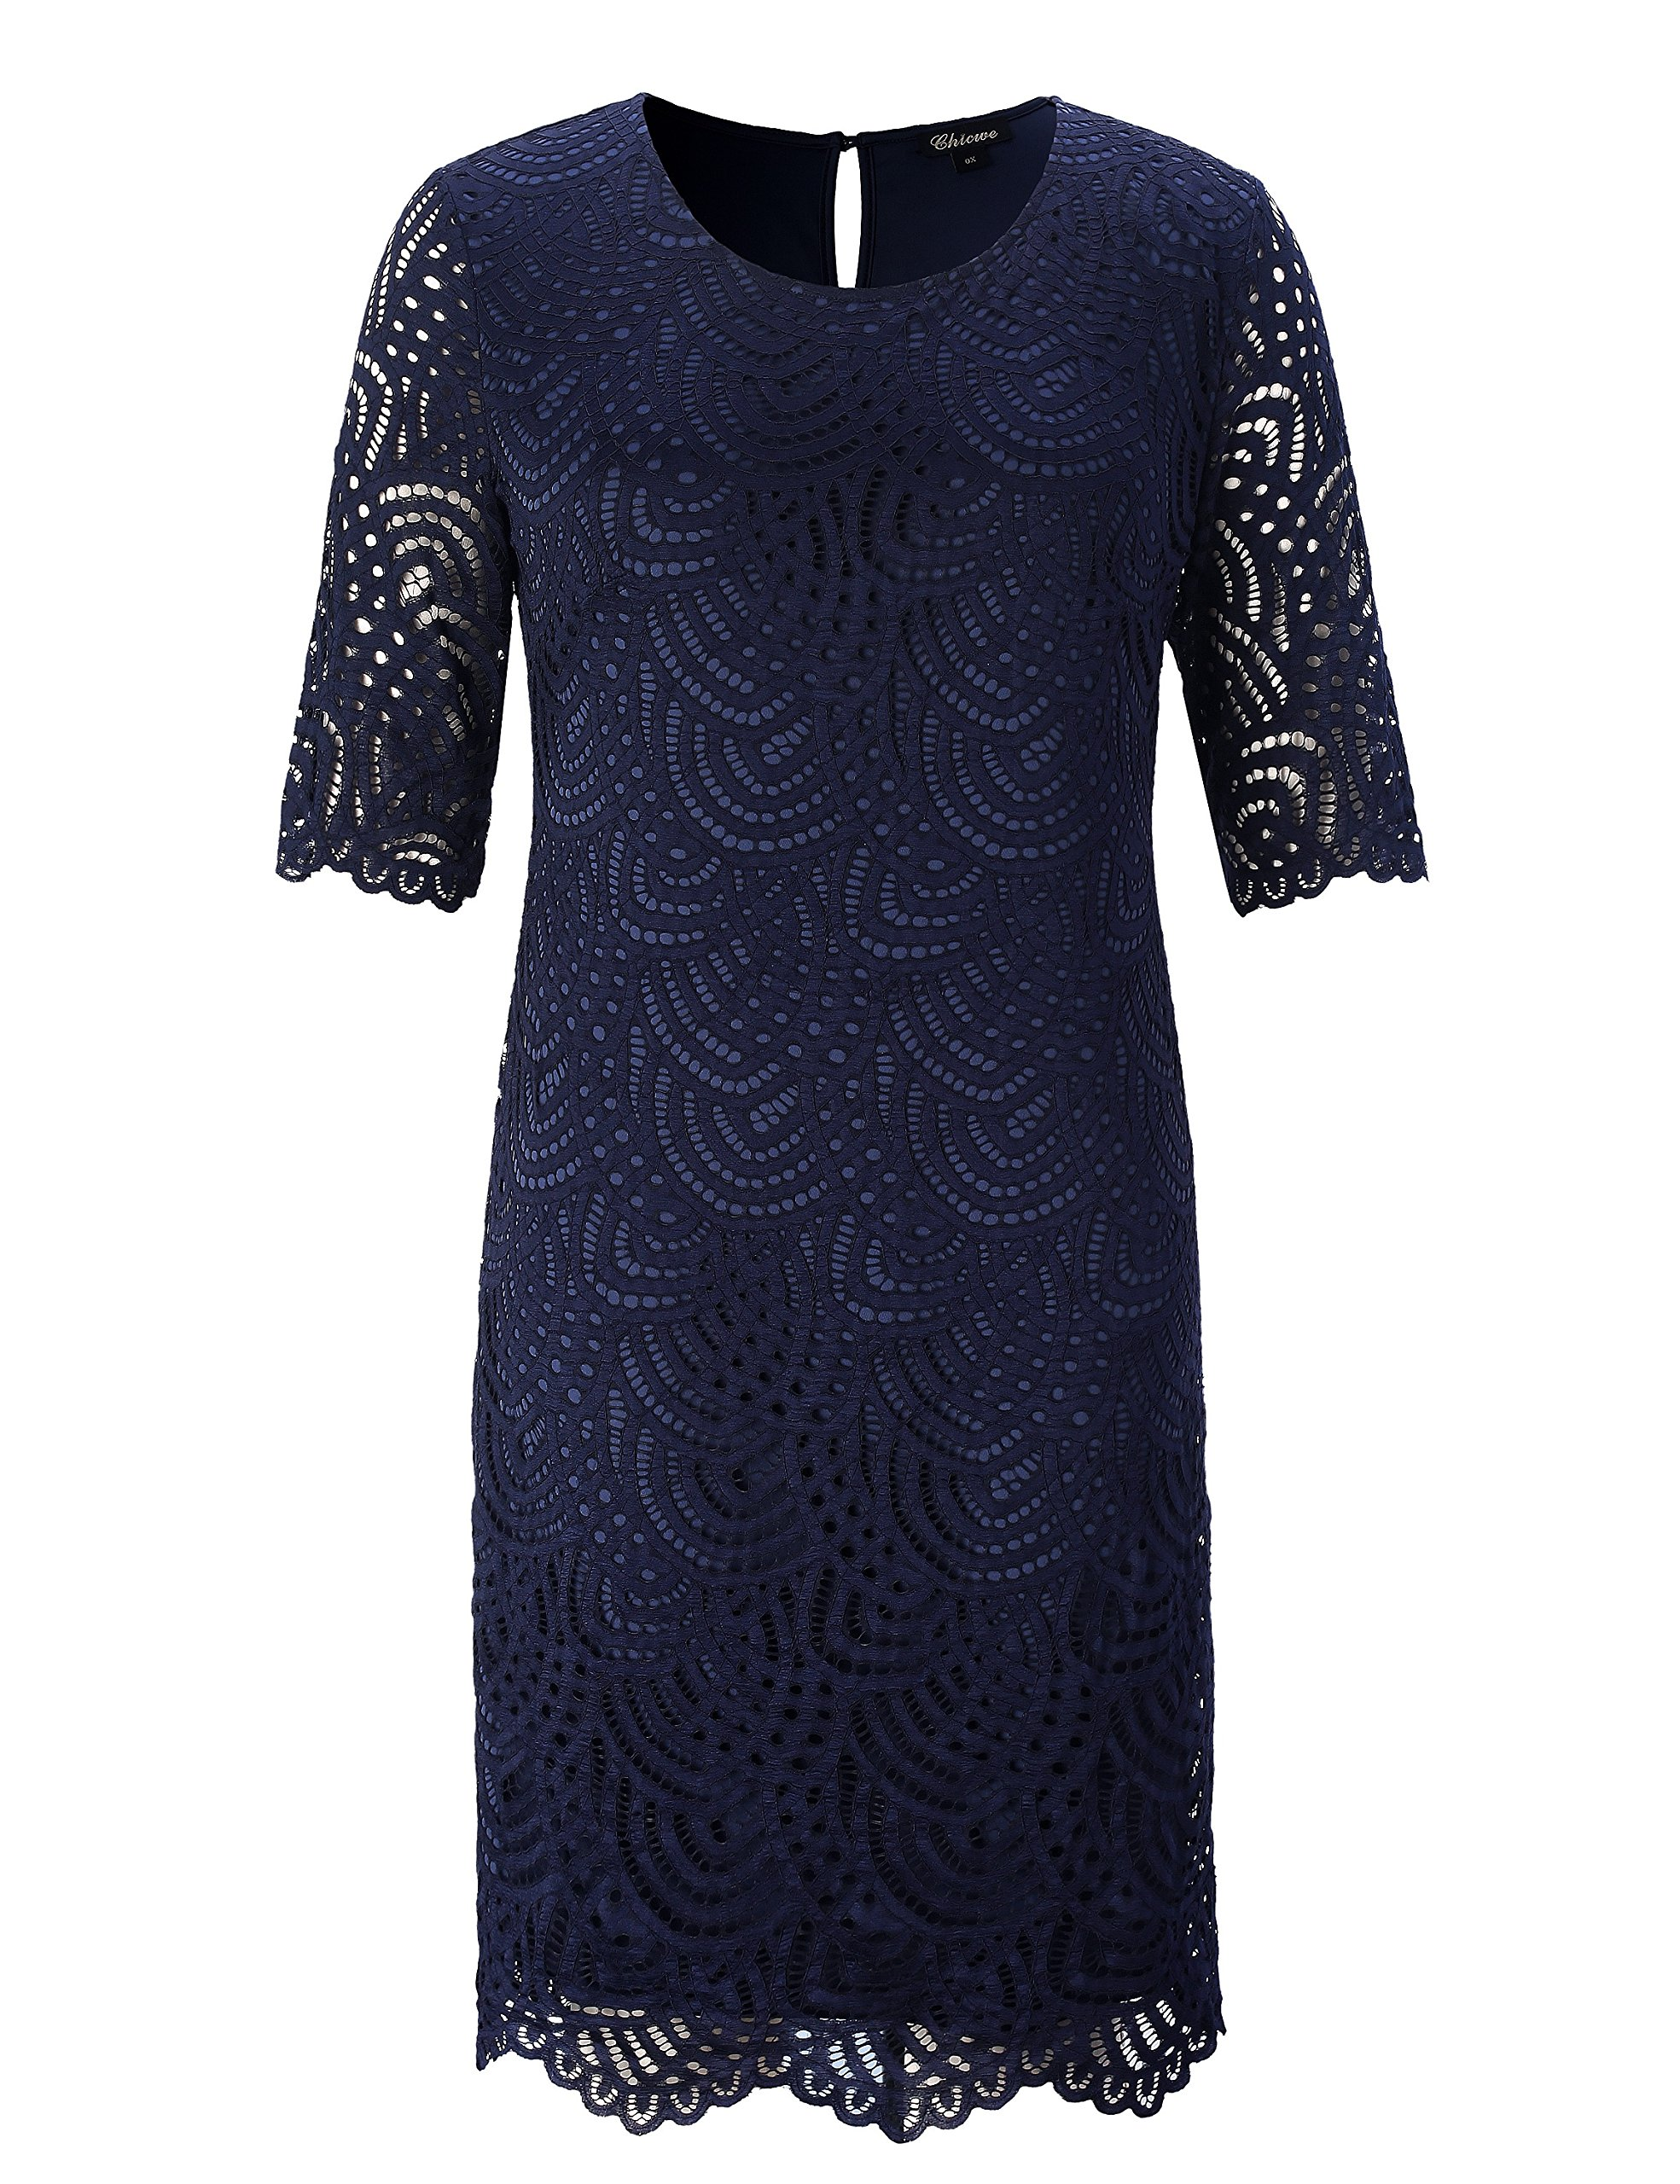 Chicwe Women's Lined Stretch Lace Plus Size Shift Dress with Scalloped Hem and Cuff Navy 3X